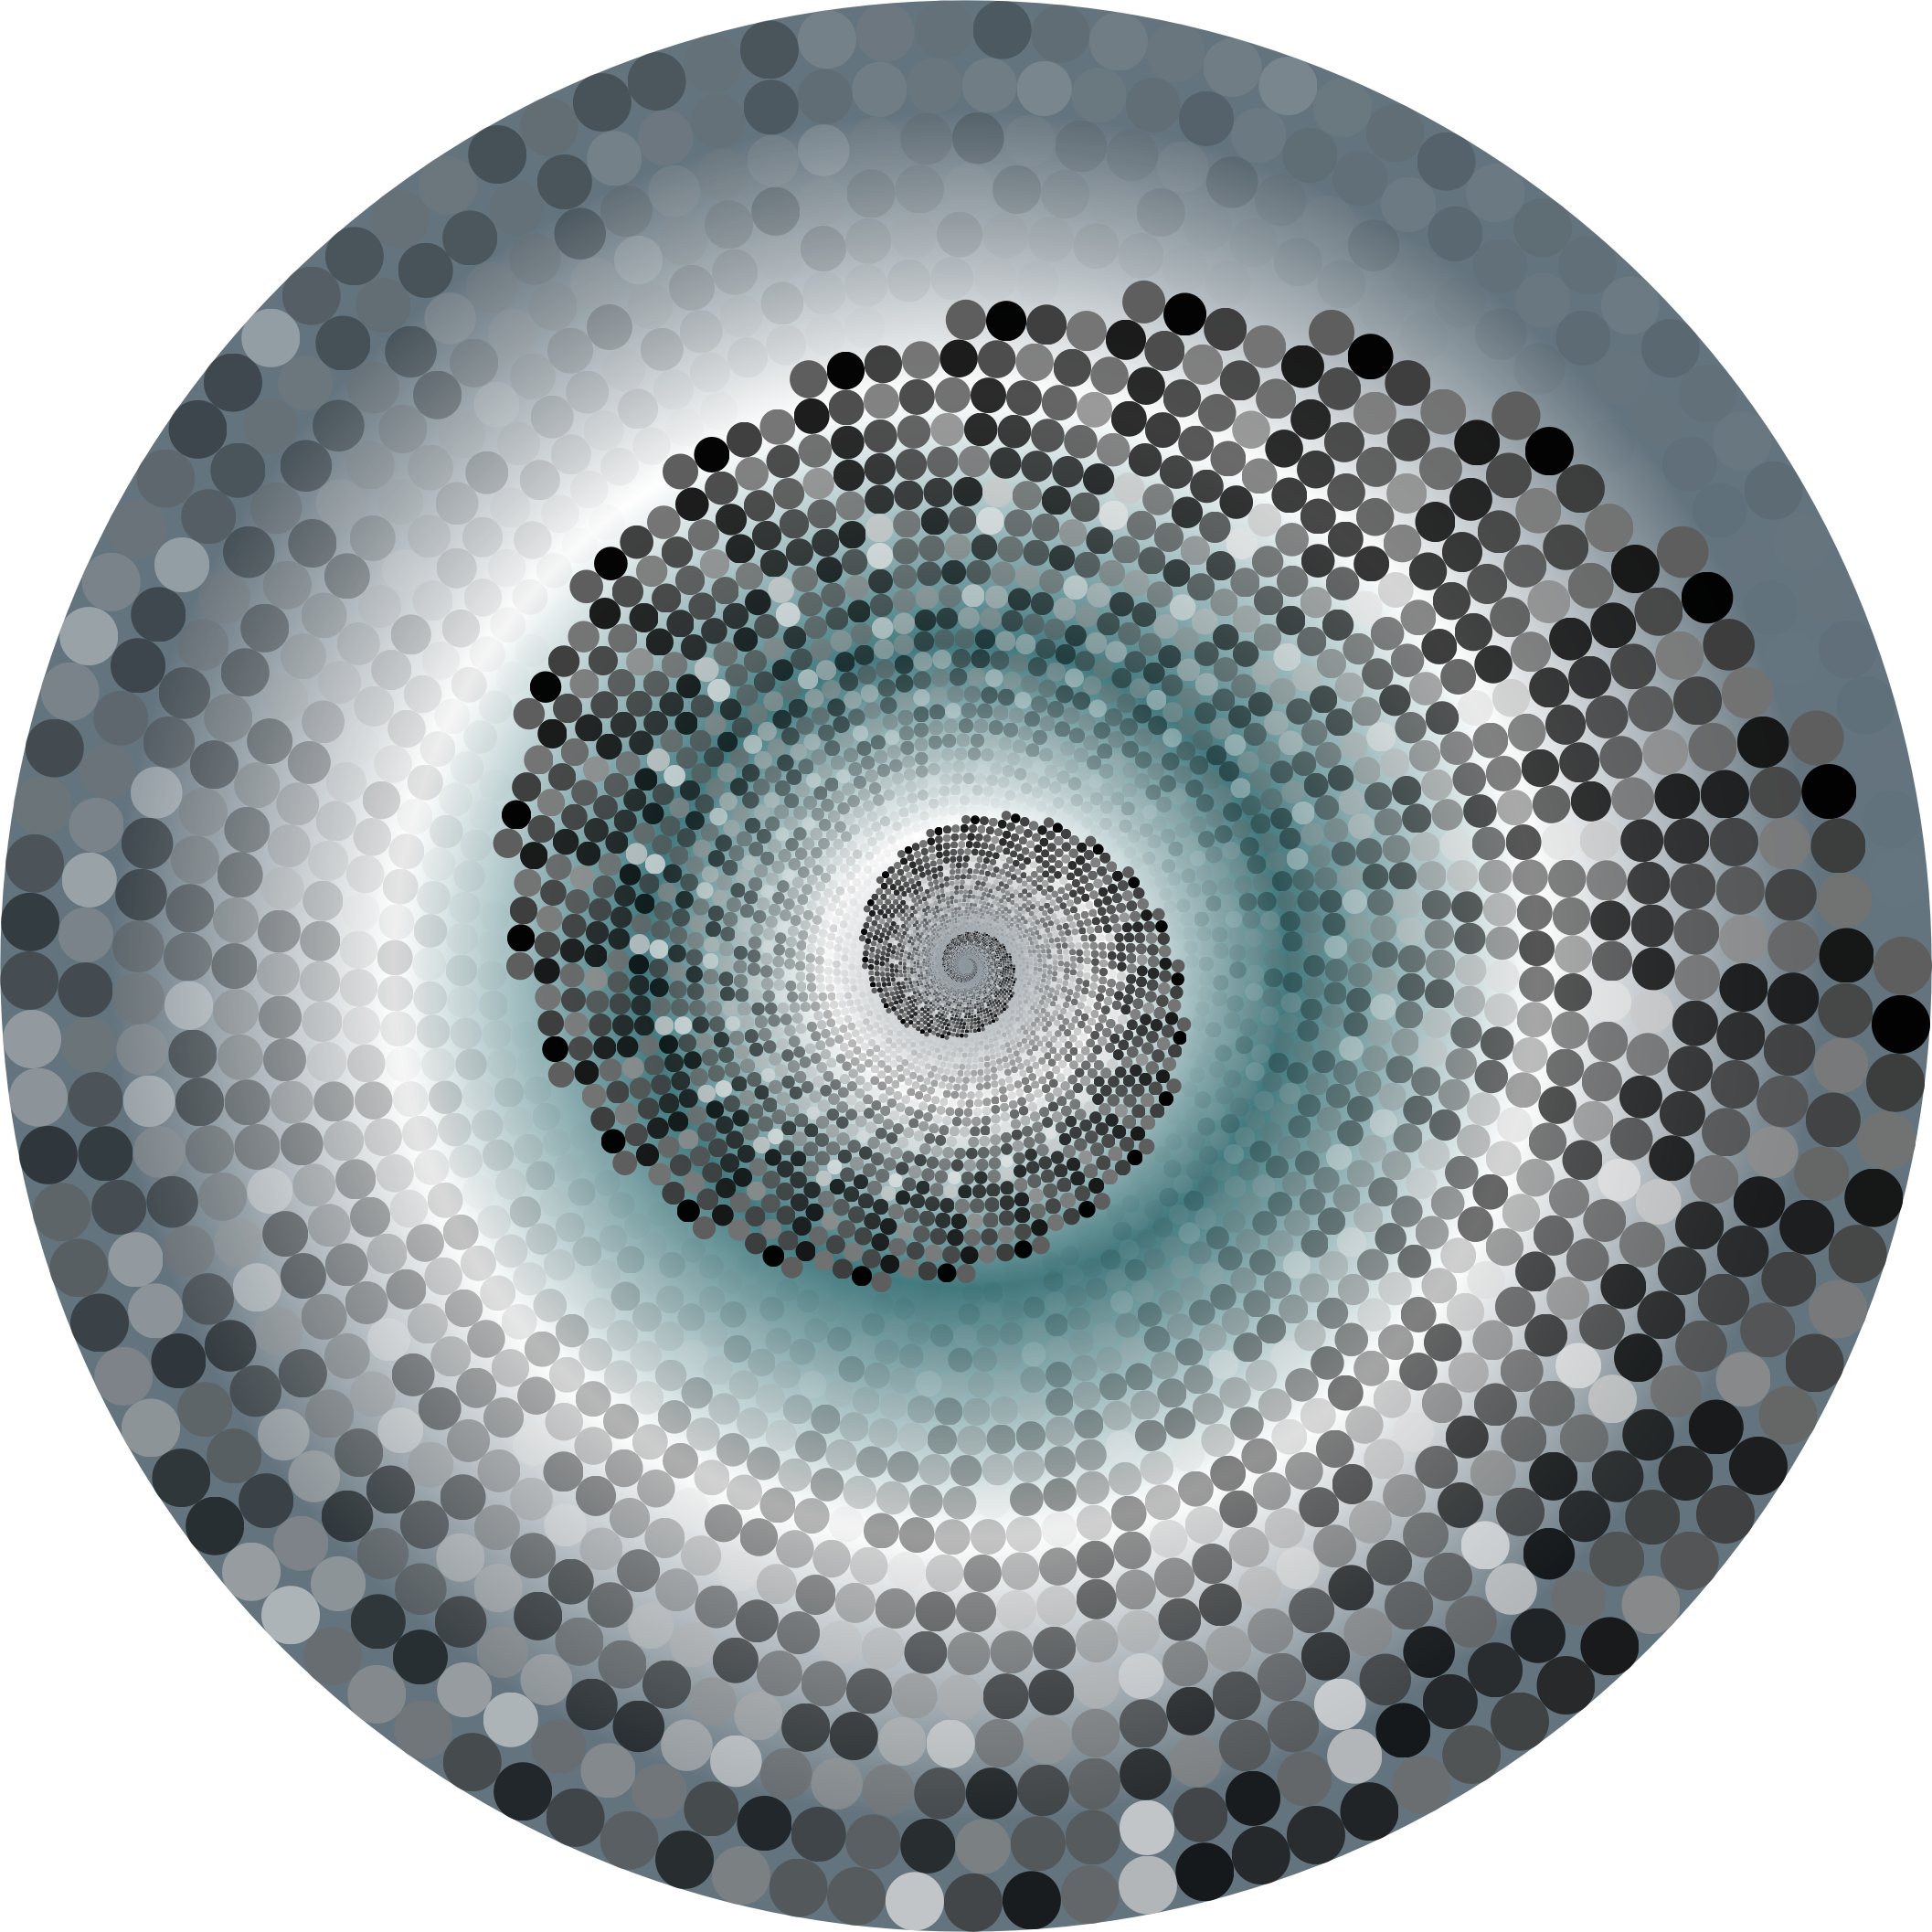 Grayscale Swirling Circles Vortex Variation 7 by GDJ